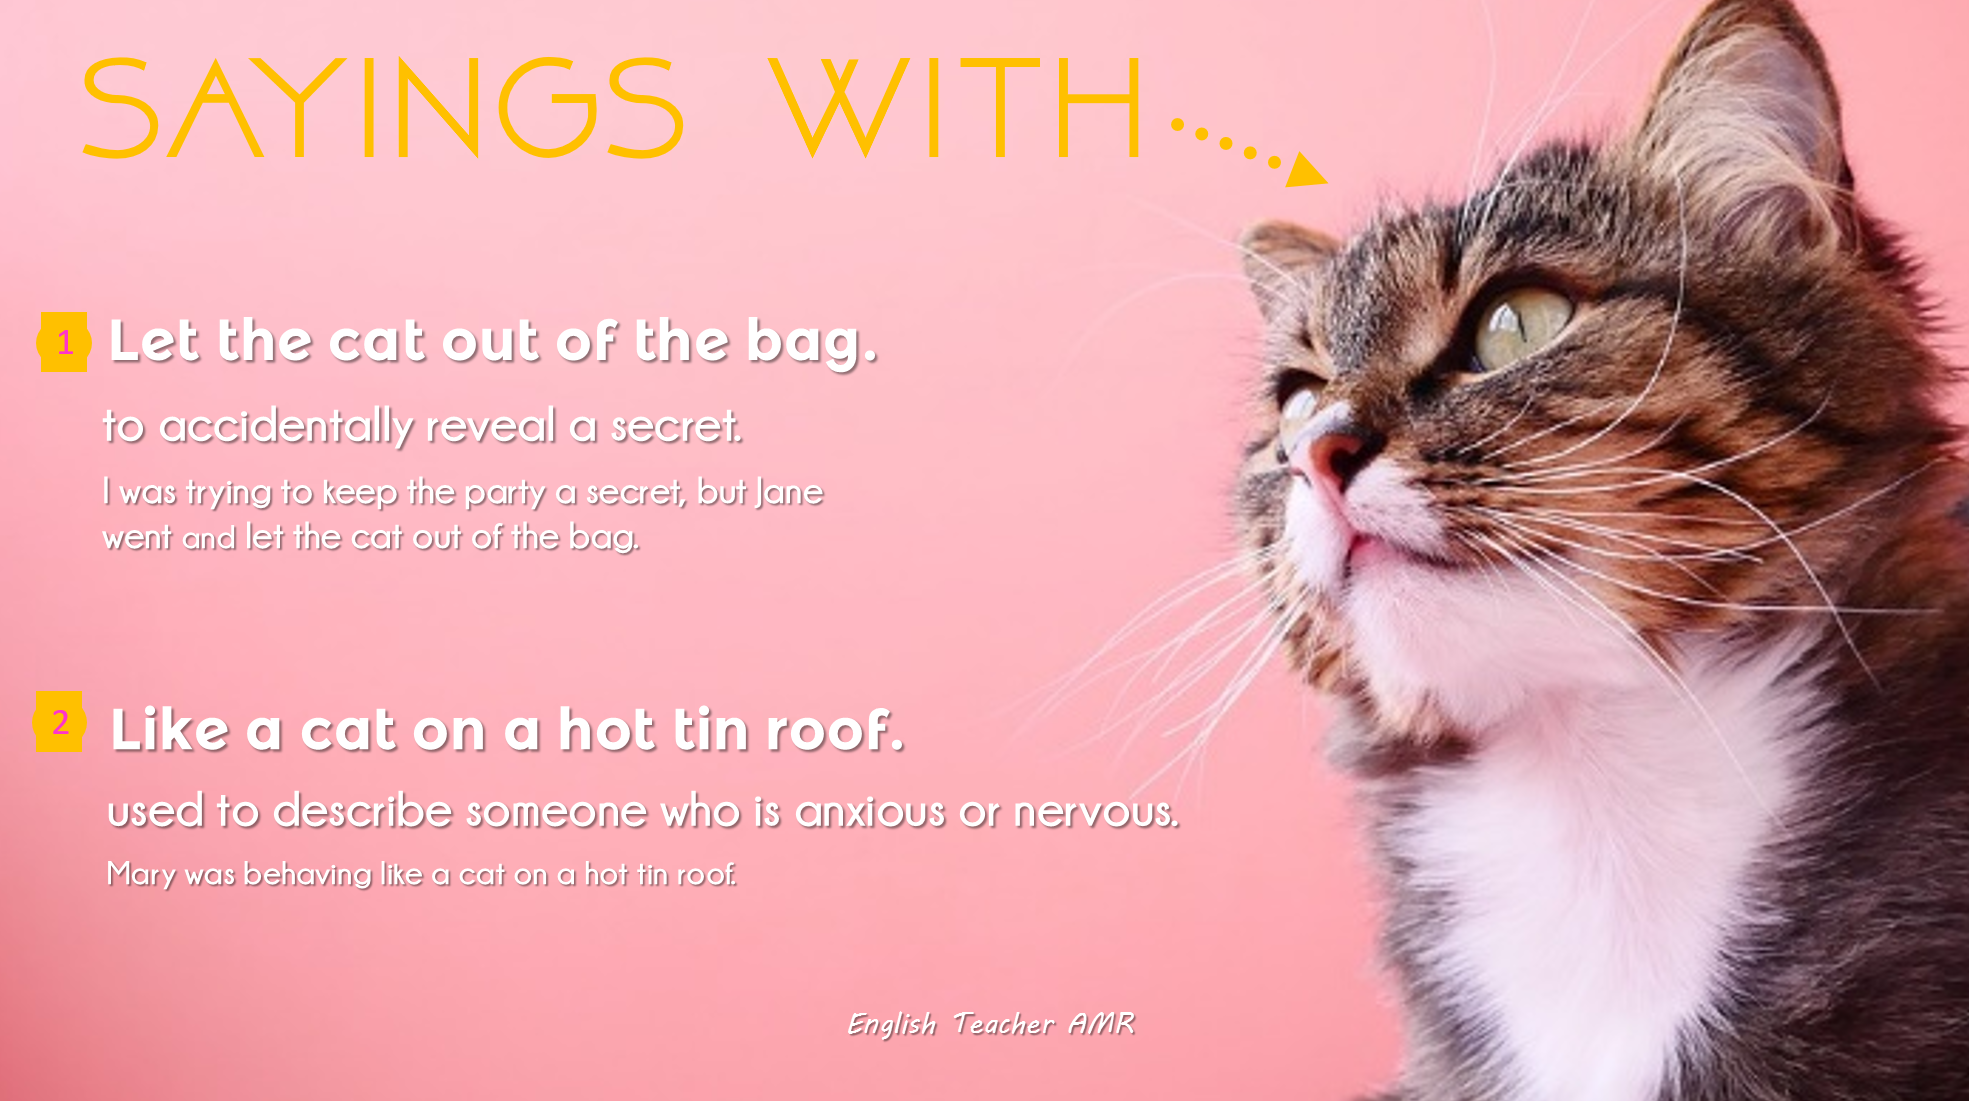 Idioms With Cats English Teacher Amr Anglijskij Englisch Anglais Inglese English Teacher Teacher English